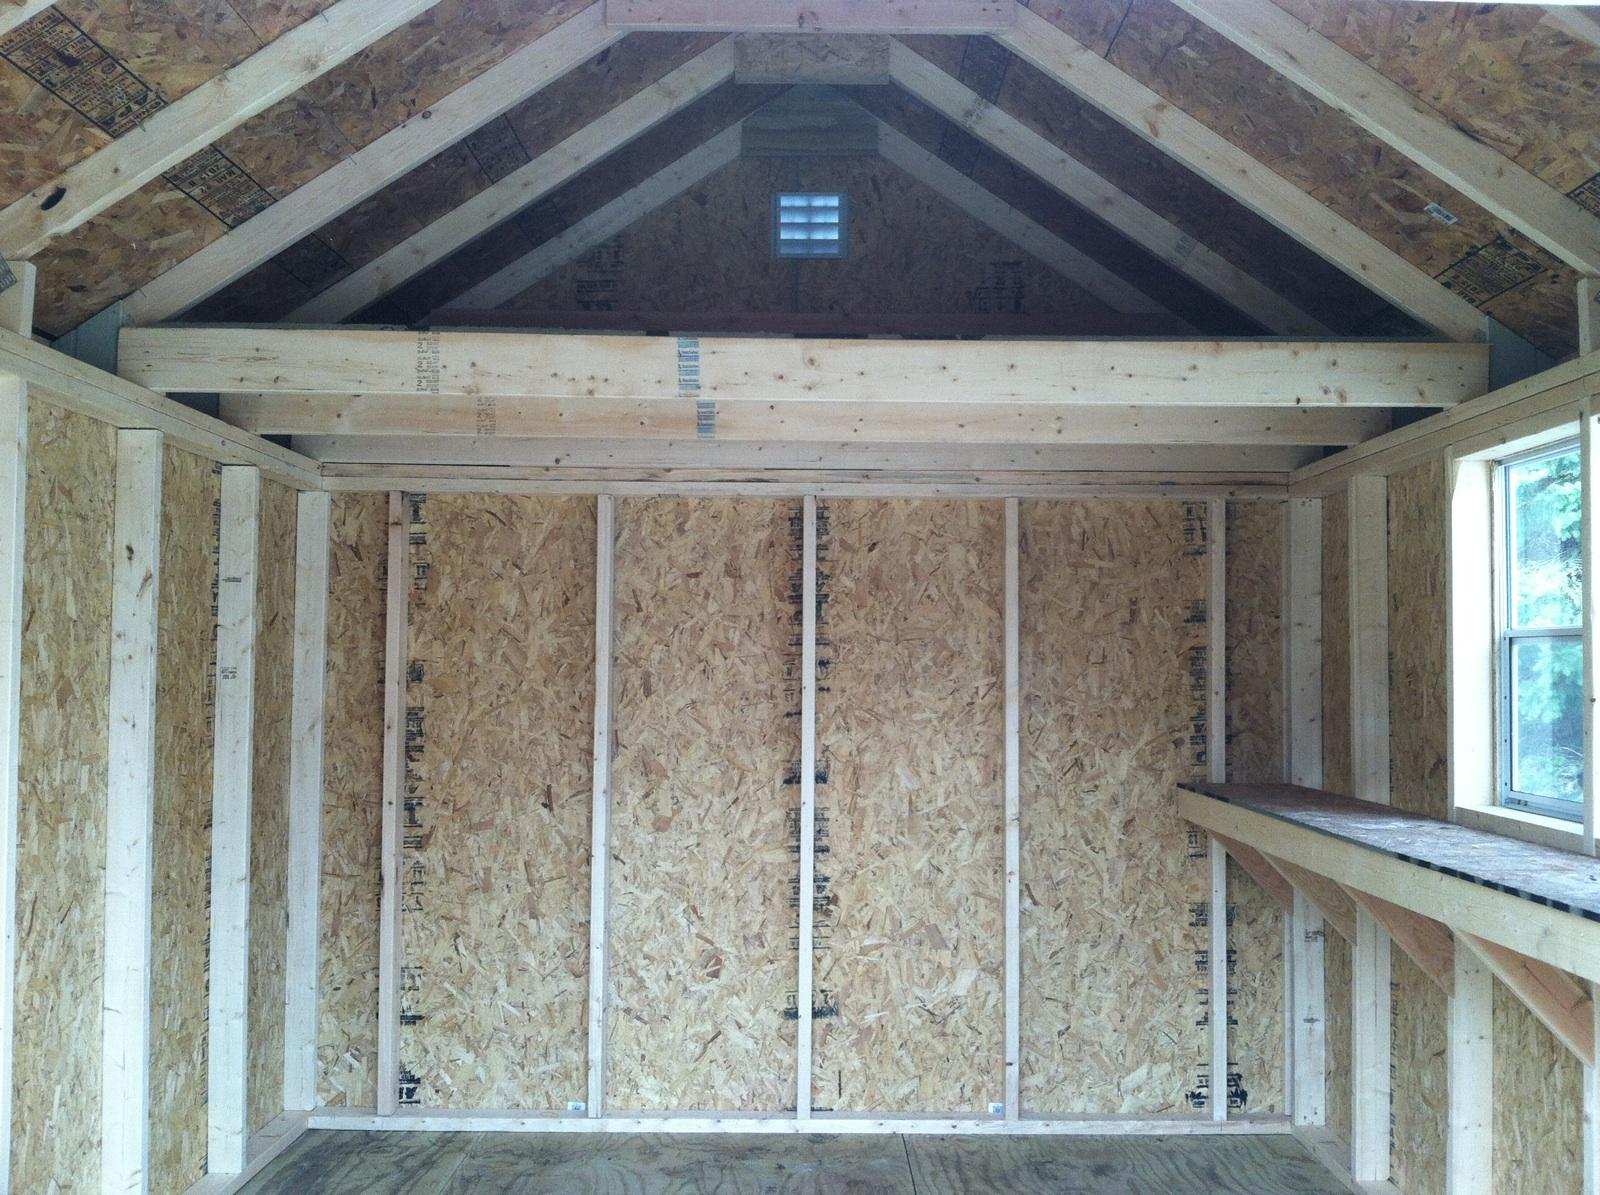 Interior Loft - 10' Wide Gable Deluxe and 1' Deep Shelving